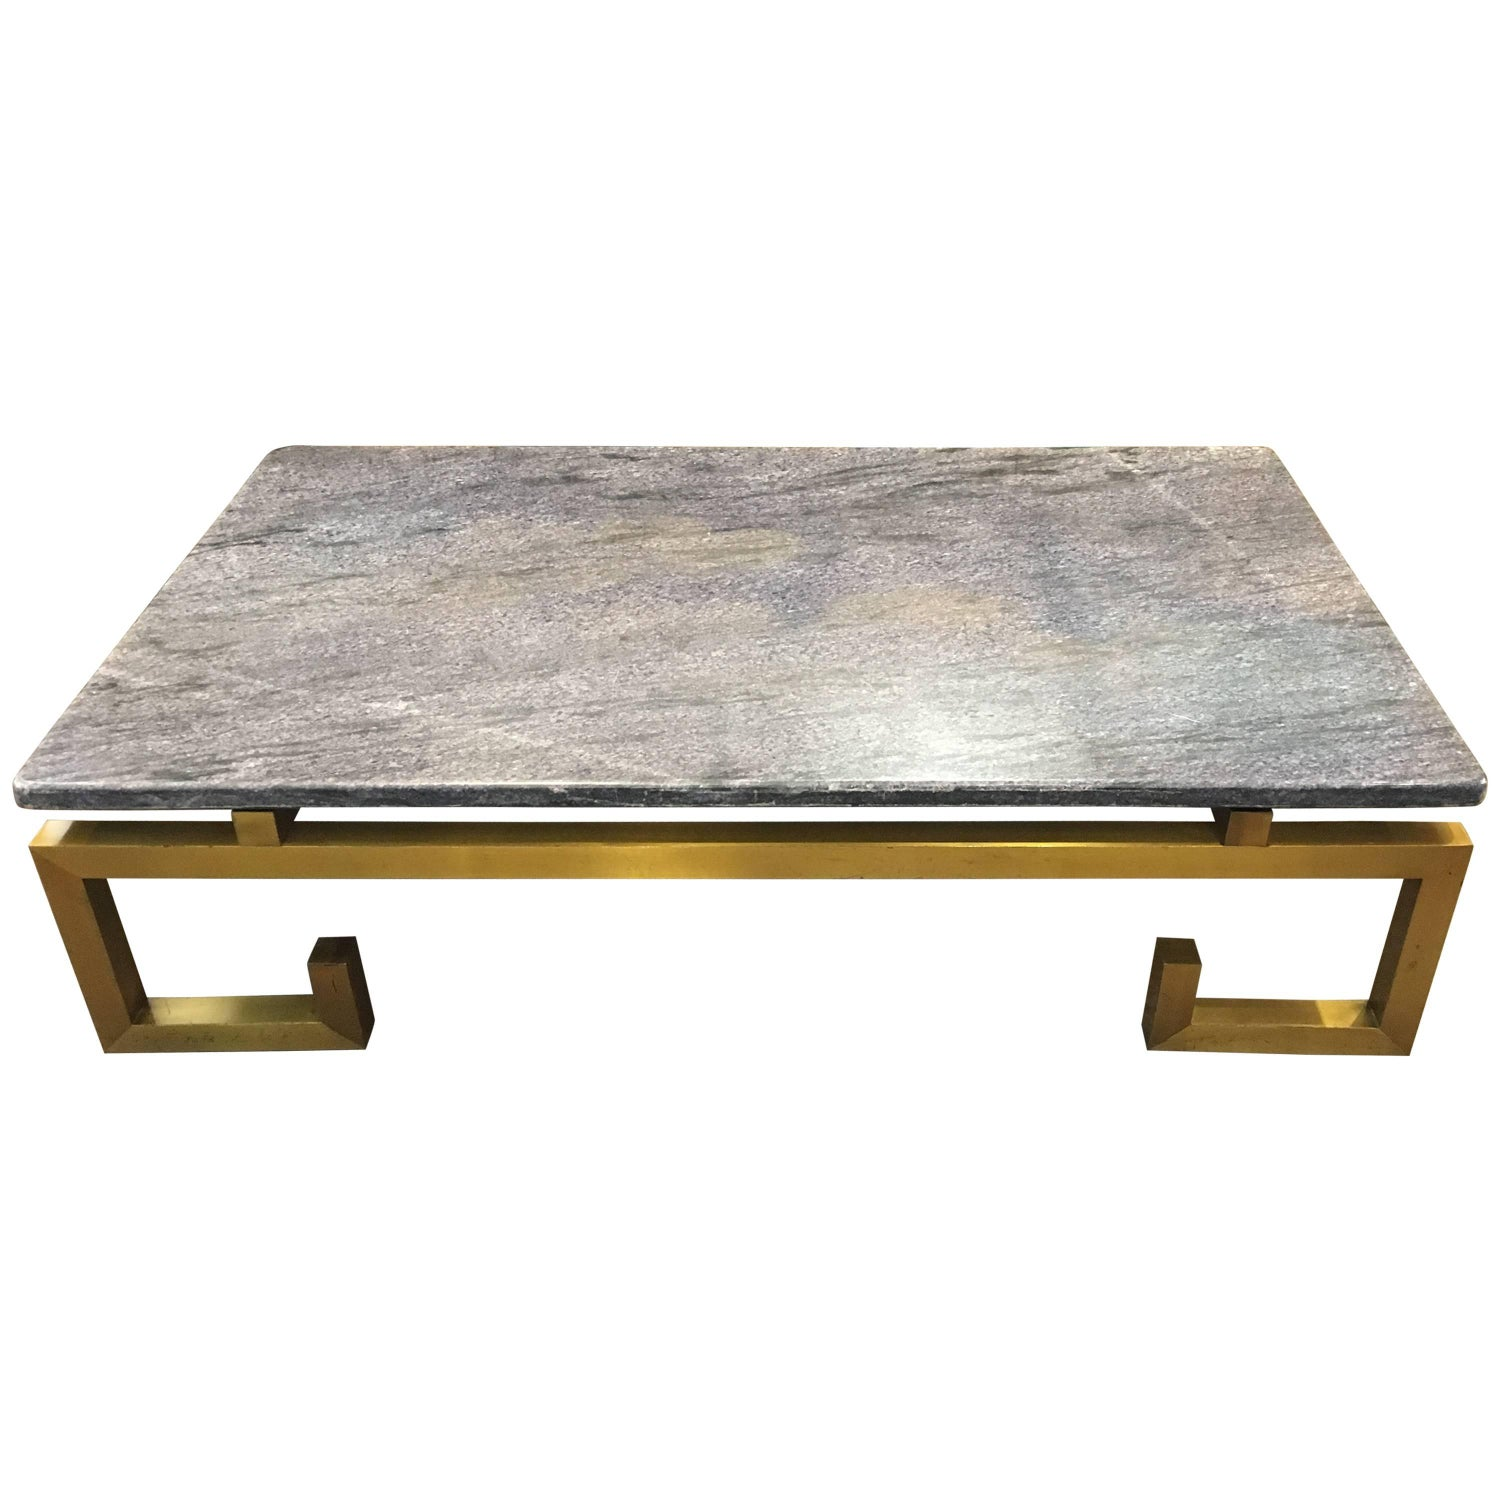 Solaris Kinetic Marble and Brass Coffee Table For Sale at 1stdibs